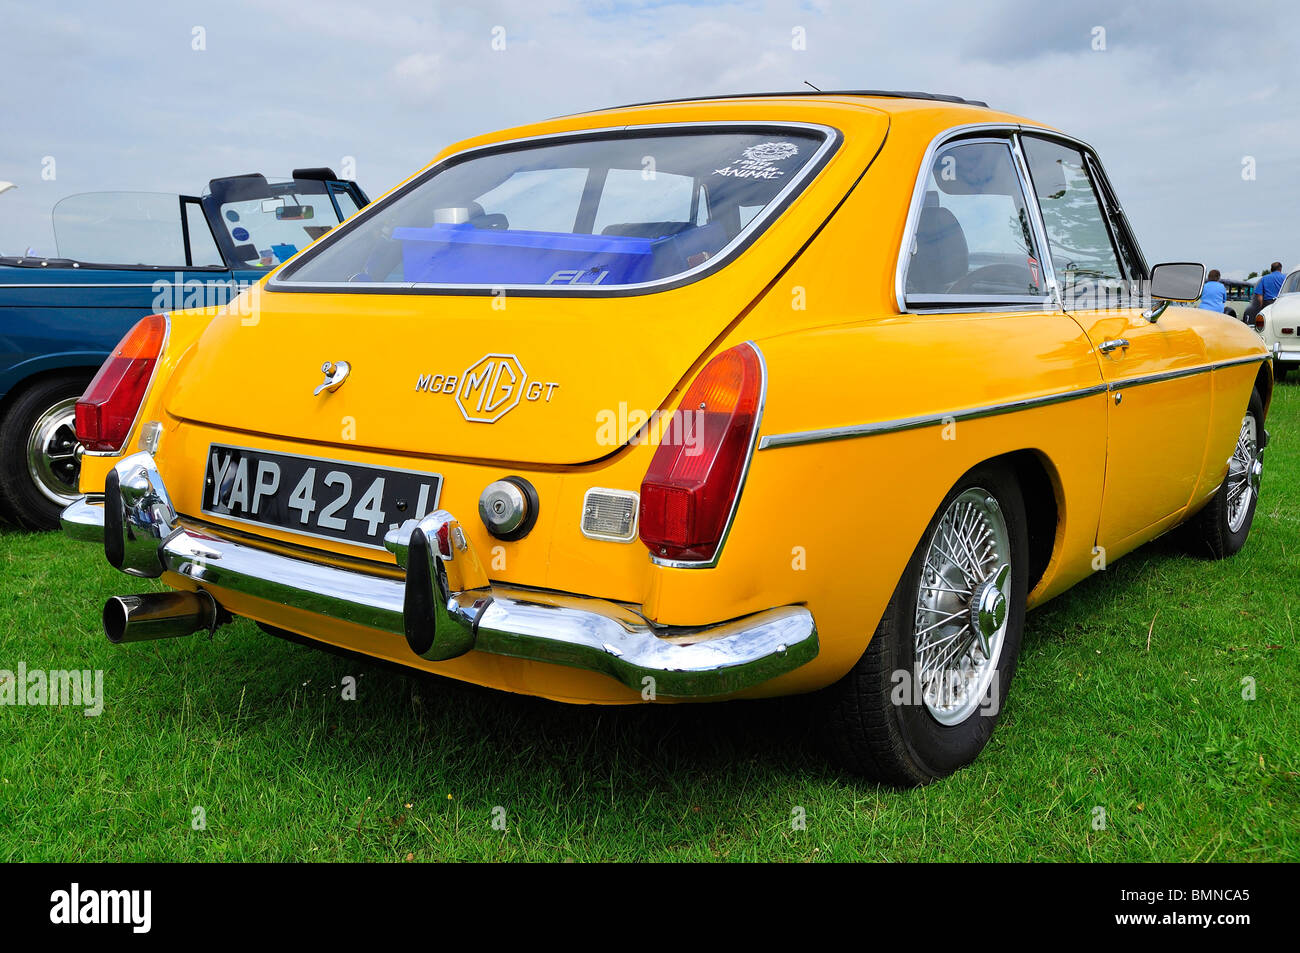 MG Car At Classic Car Show In Luton Stock Photo Alamy - Mg car show